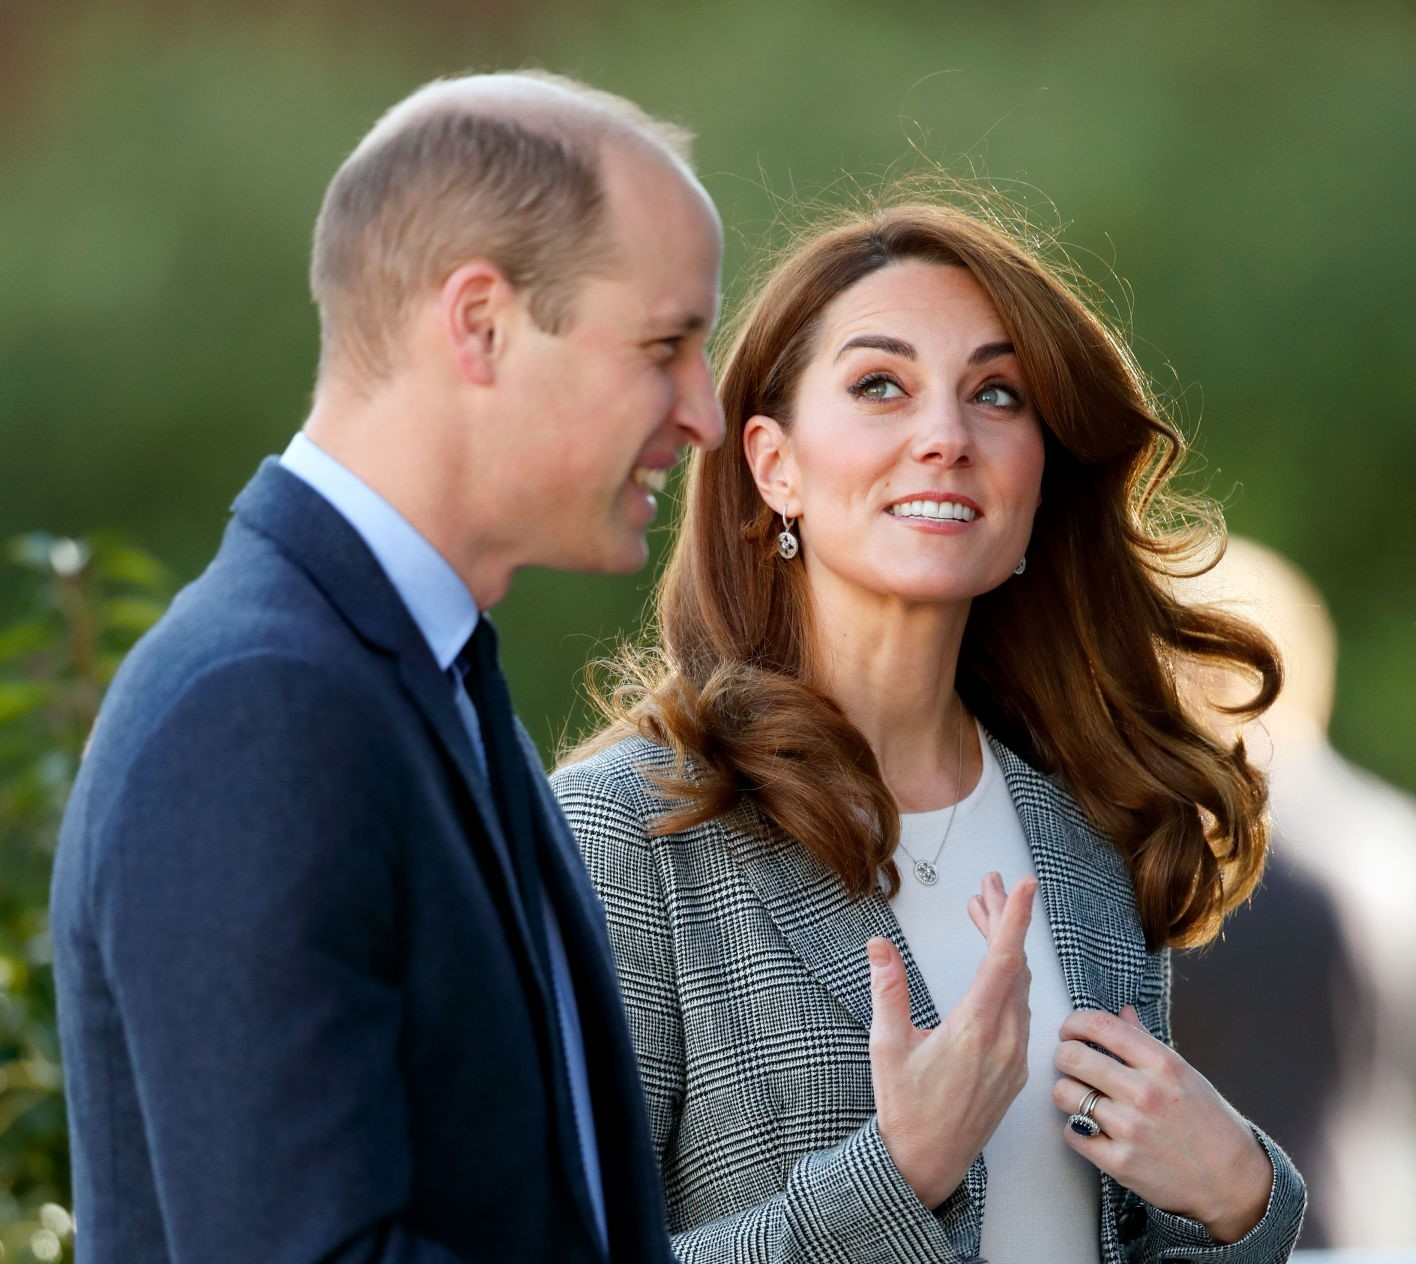 Kate Middleton Caught Laughing with Prince William